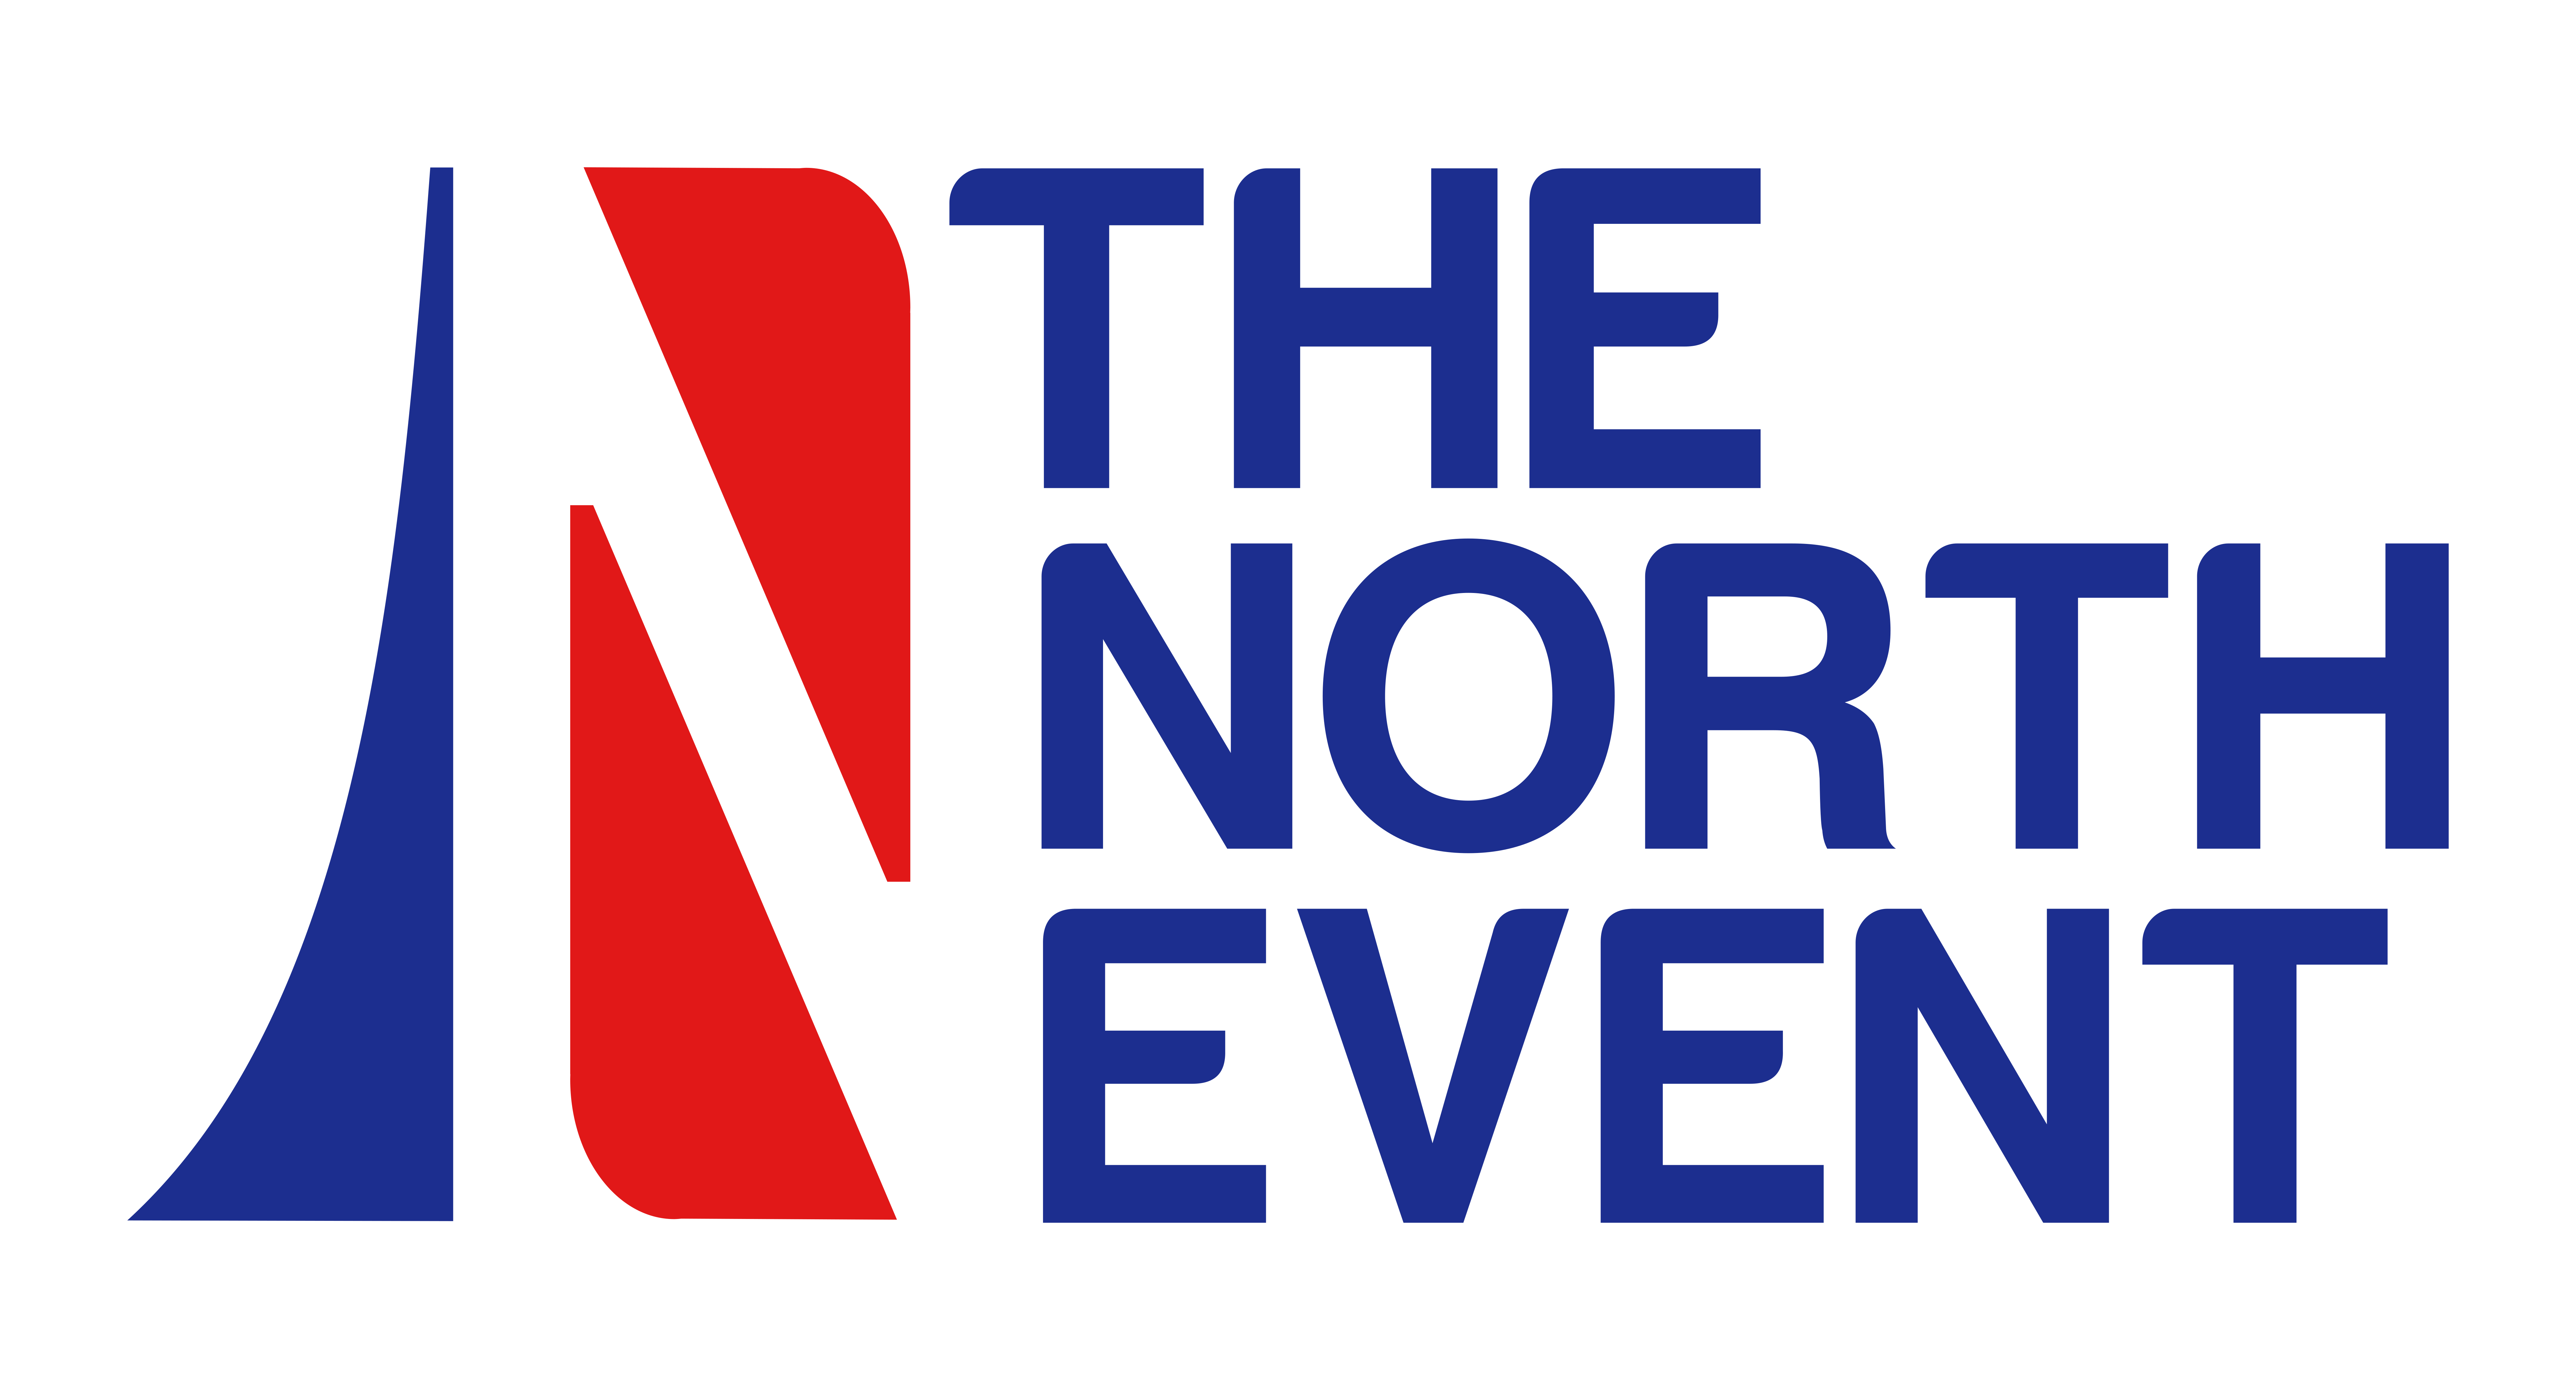 The North Event